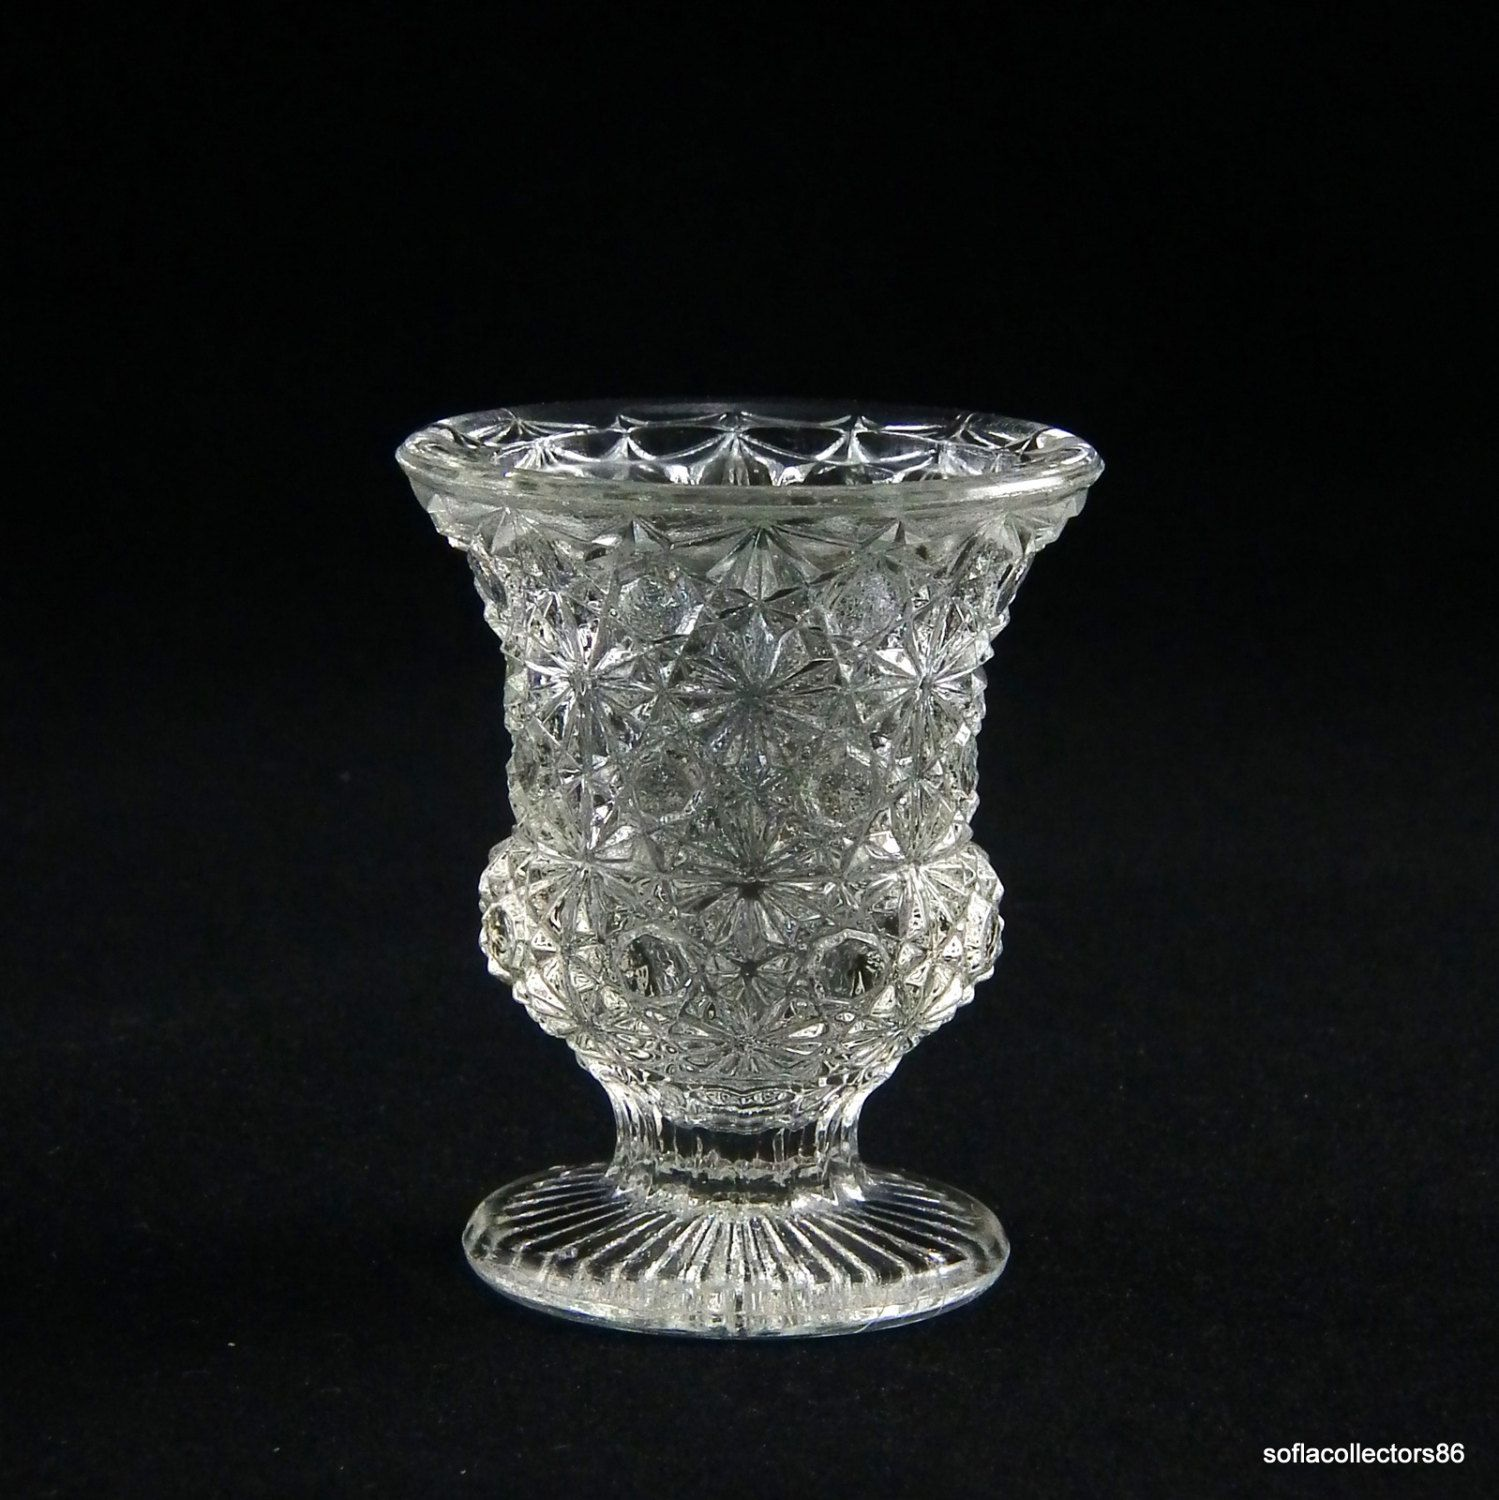 Toothpick Holder in Crystal Daisy and Button Pattern - Vintage - 1950s - 1960s by soflacollectors86 on Etsy